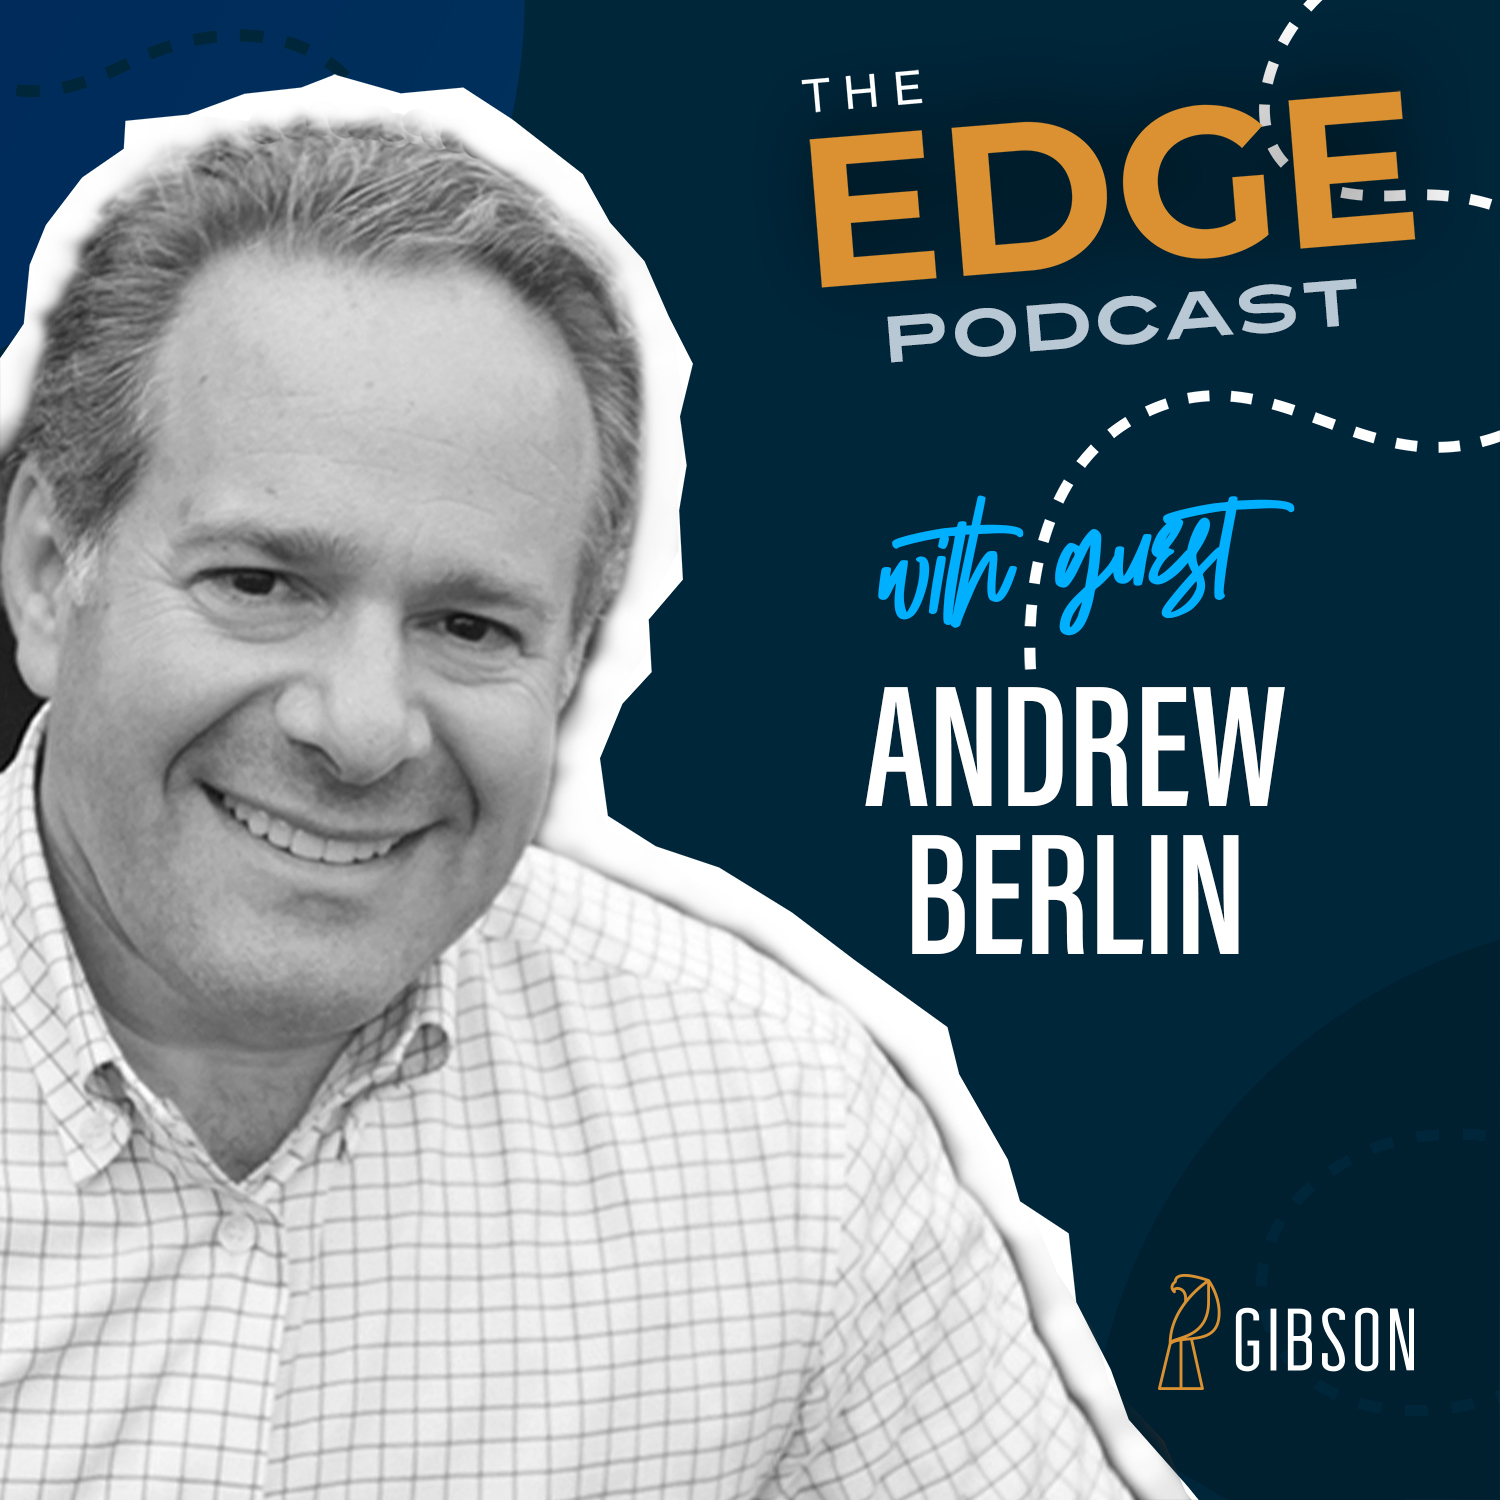 Andrew Berlin talks about recruiting for character